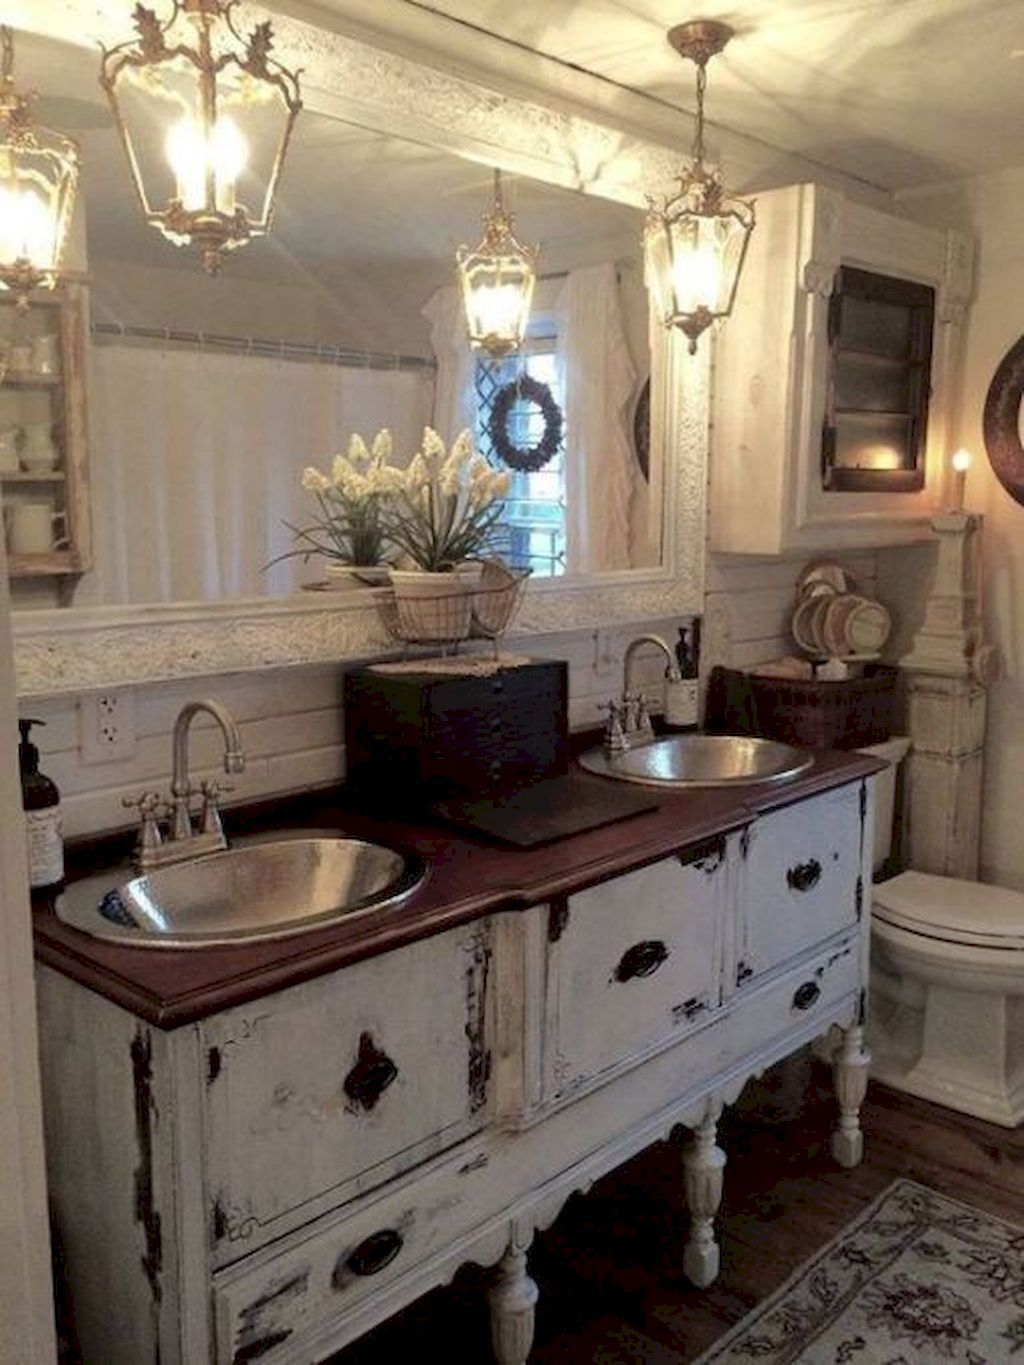 terrific shabby chic bathroom ideas | See More Beautiful Shabby Chic Bathroom Decor Ideas At # ...